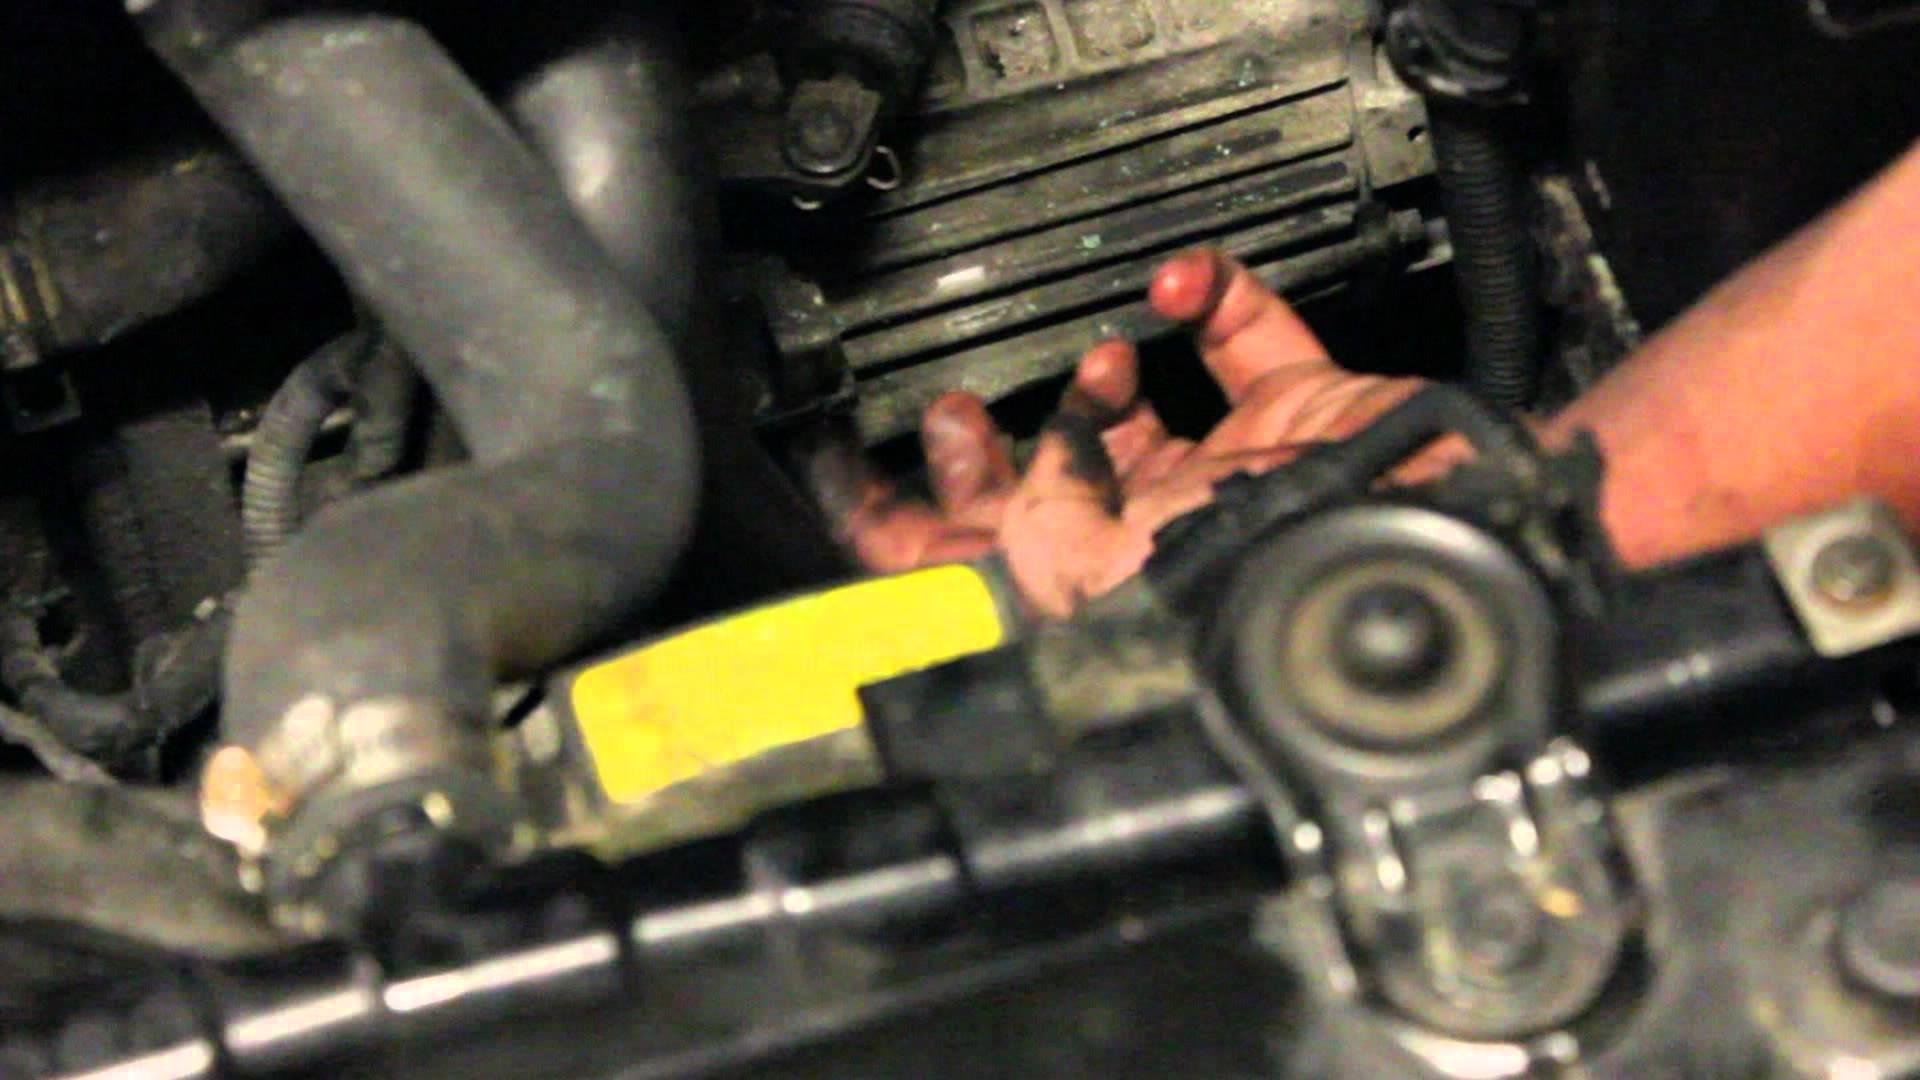 Install Rep Engine Ignition Coil Hyundai Elantra Sonata